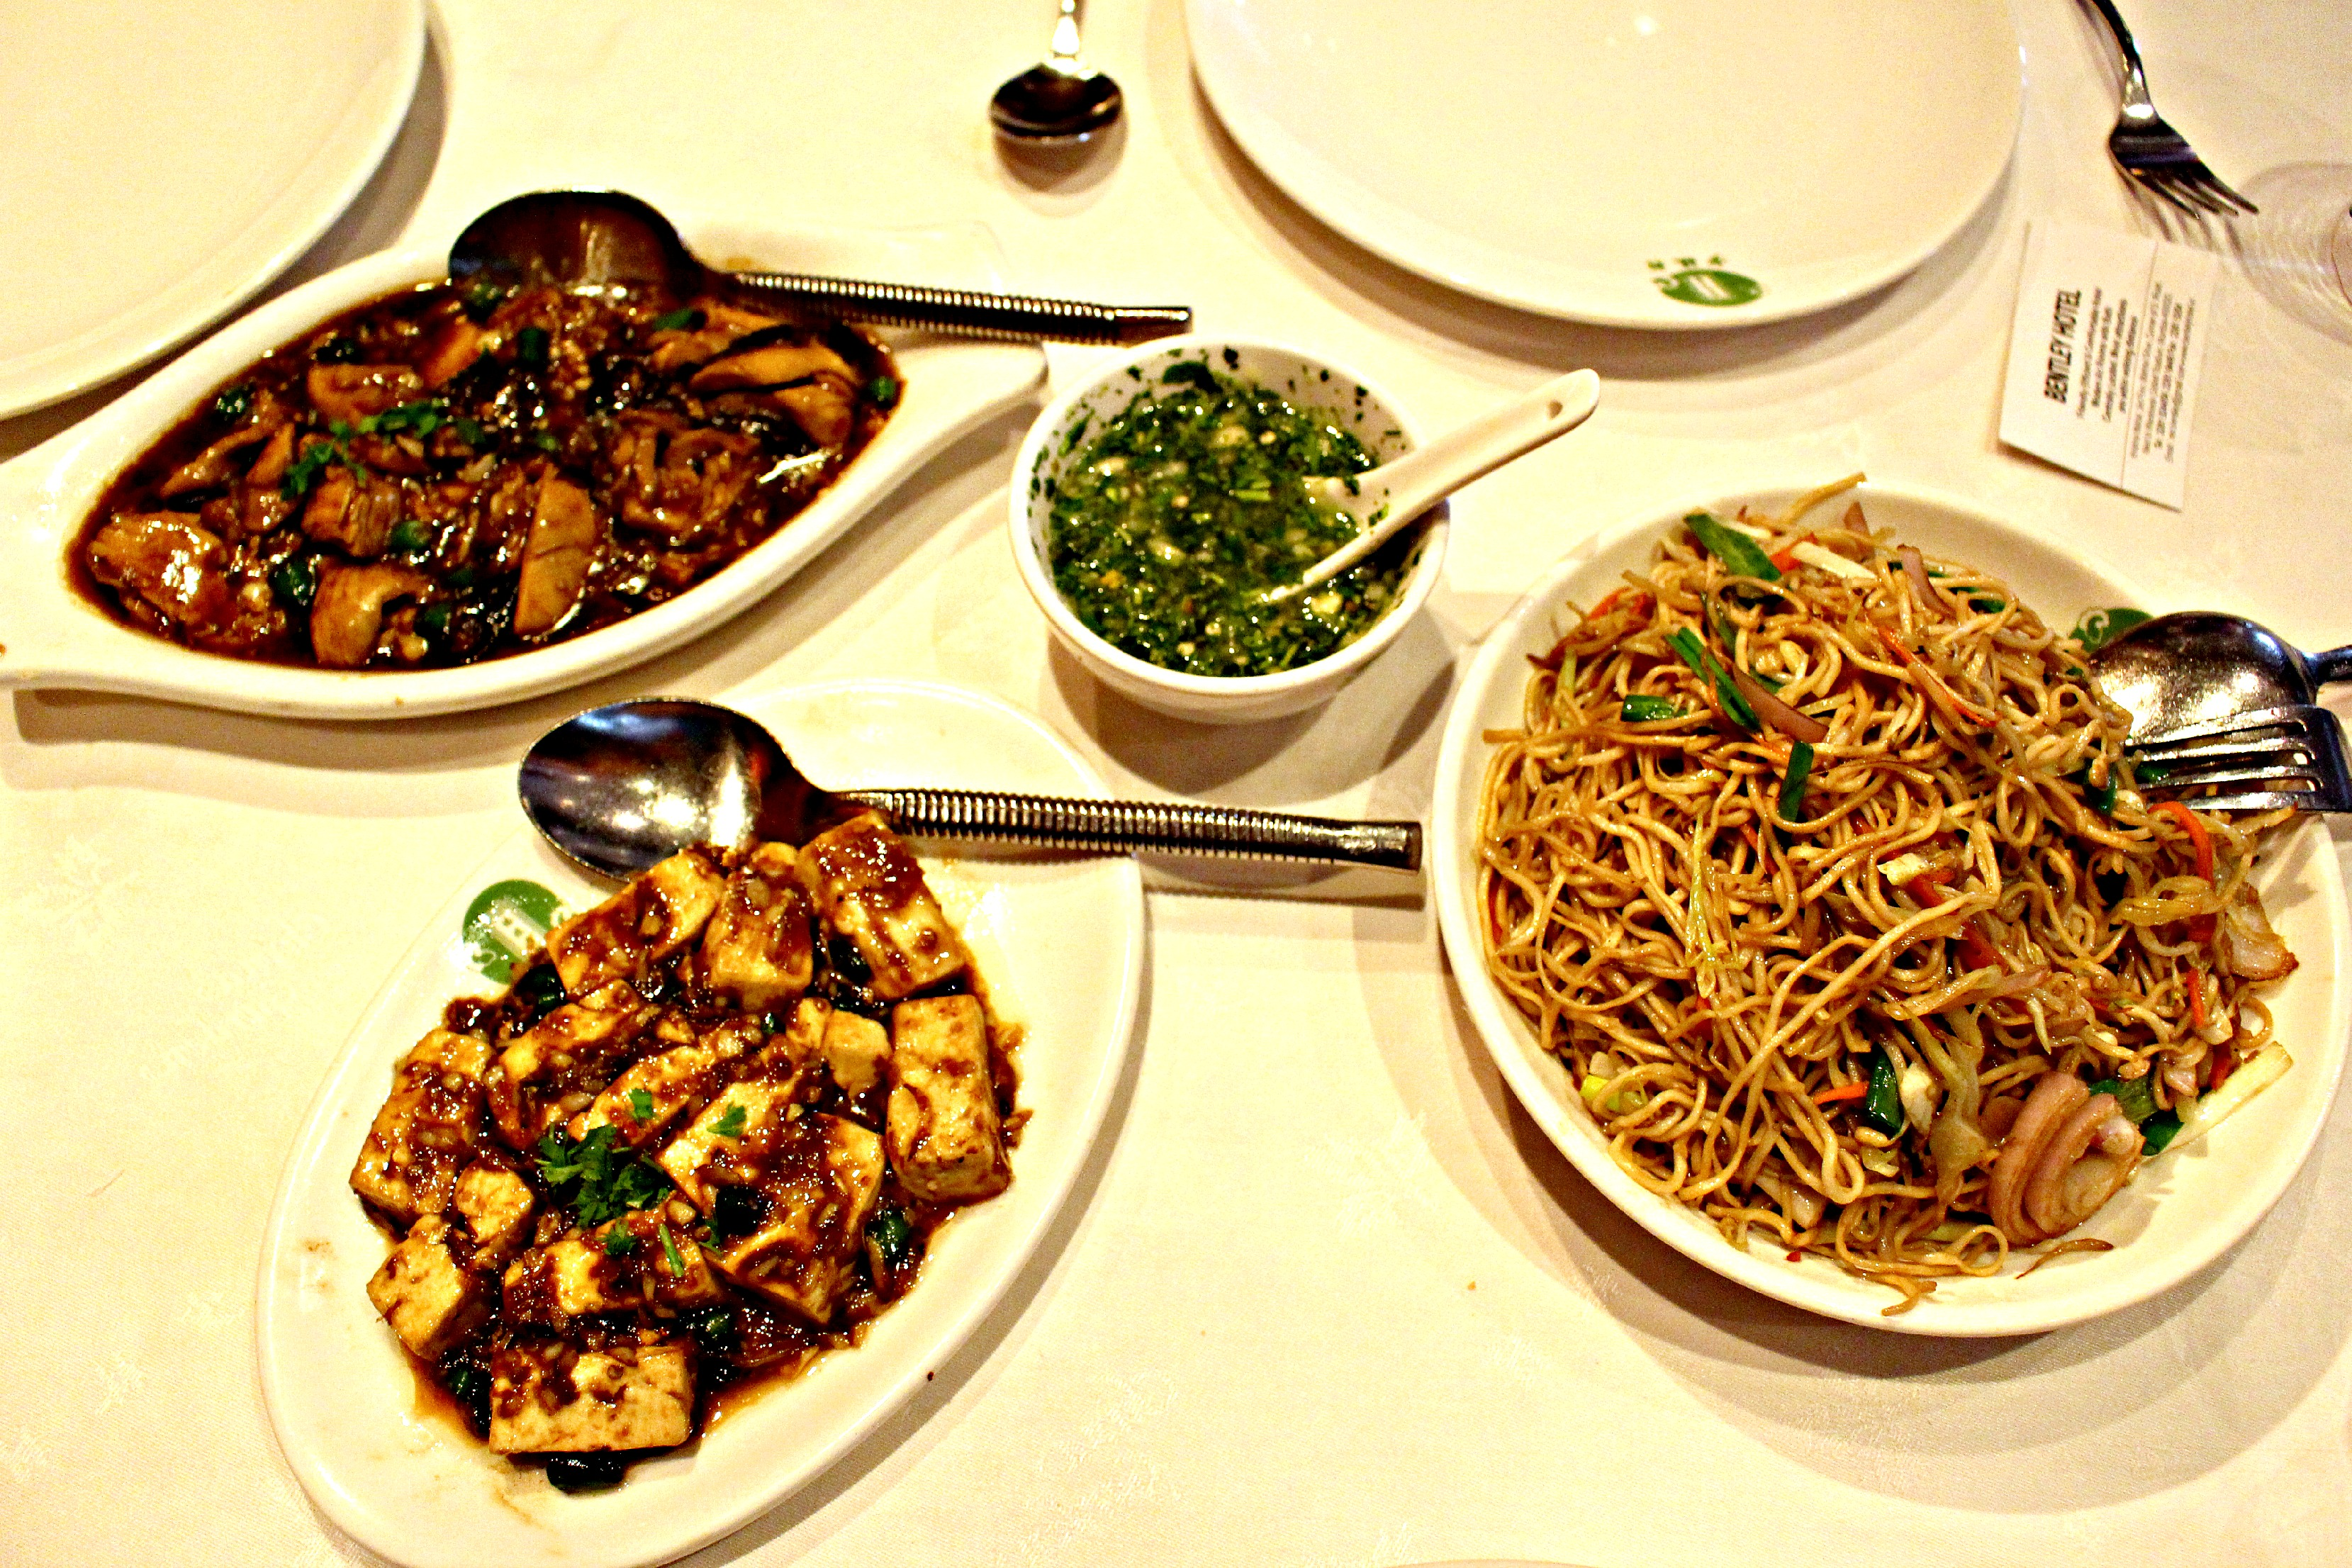 Cuisines Similar To Indian Guide To Indianized Chinese Food In 6 Dishes Food Republic